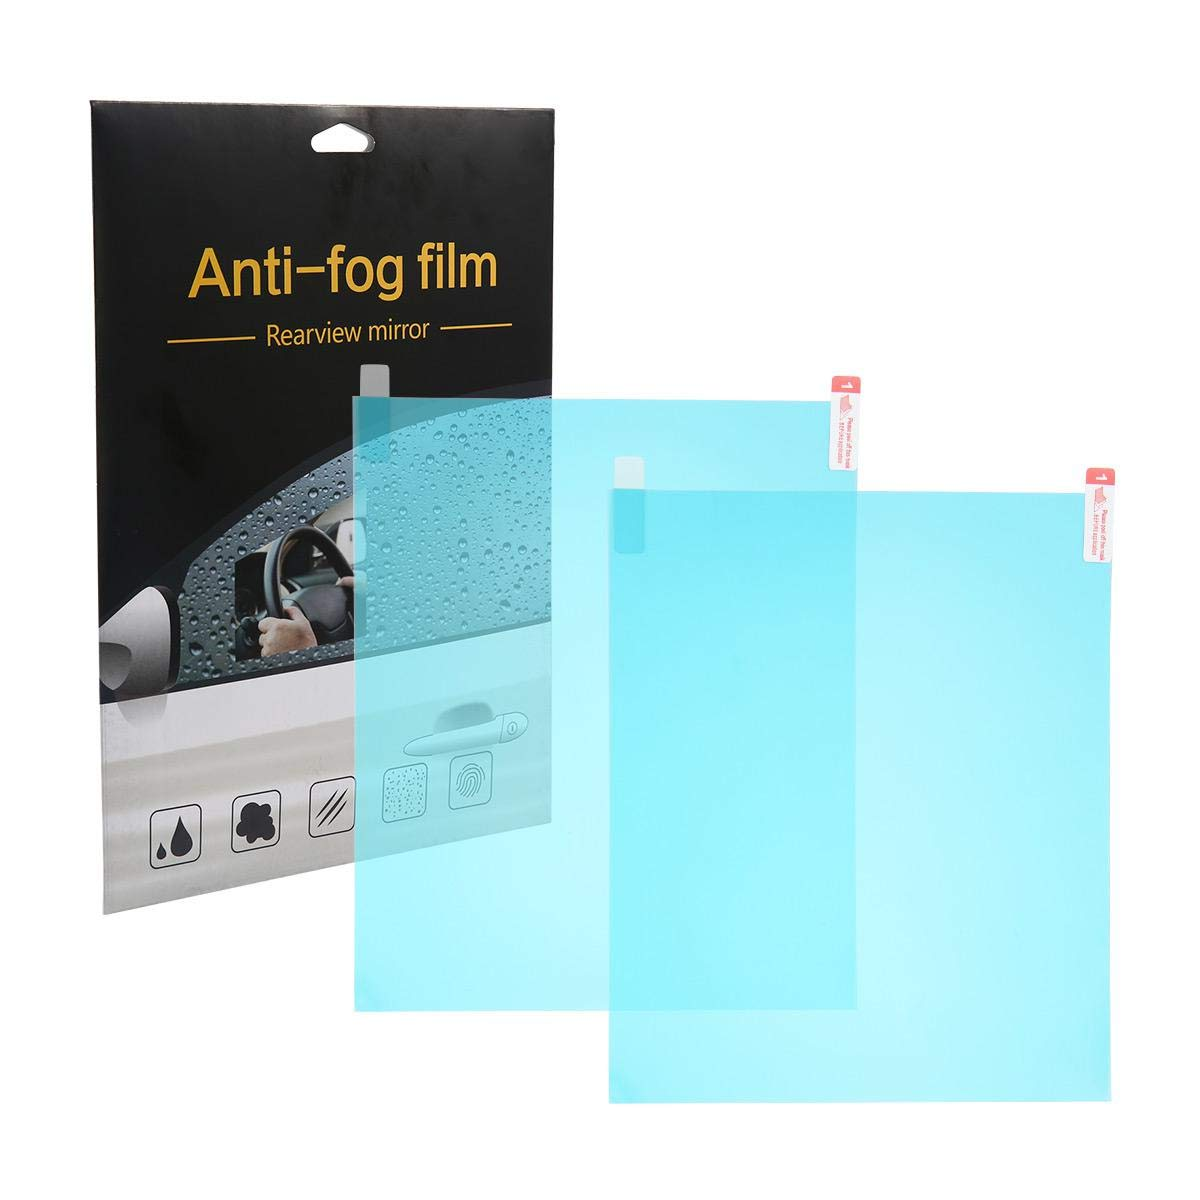 Universal Automotive Exterior Mirrors Rainproof Waterproof Film, Car Rearview Mirror Anti Fog Protective Film Car Side Mirror Window Anti-Glare Anti-Scratch Screen Protector 2 Pack Aolvo